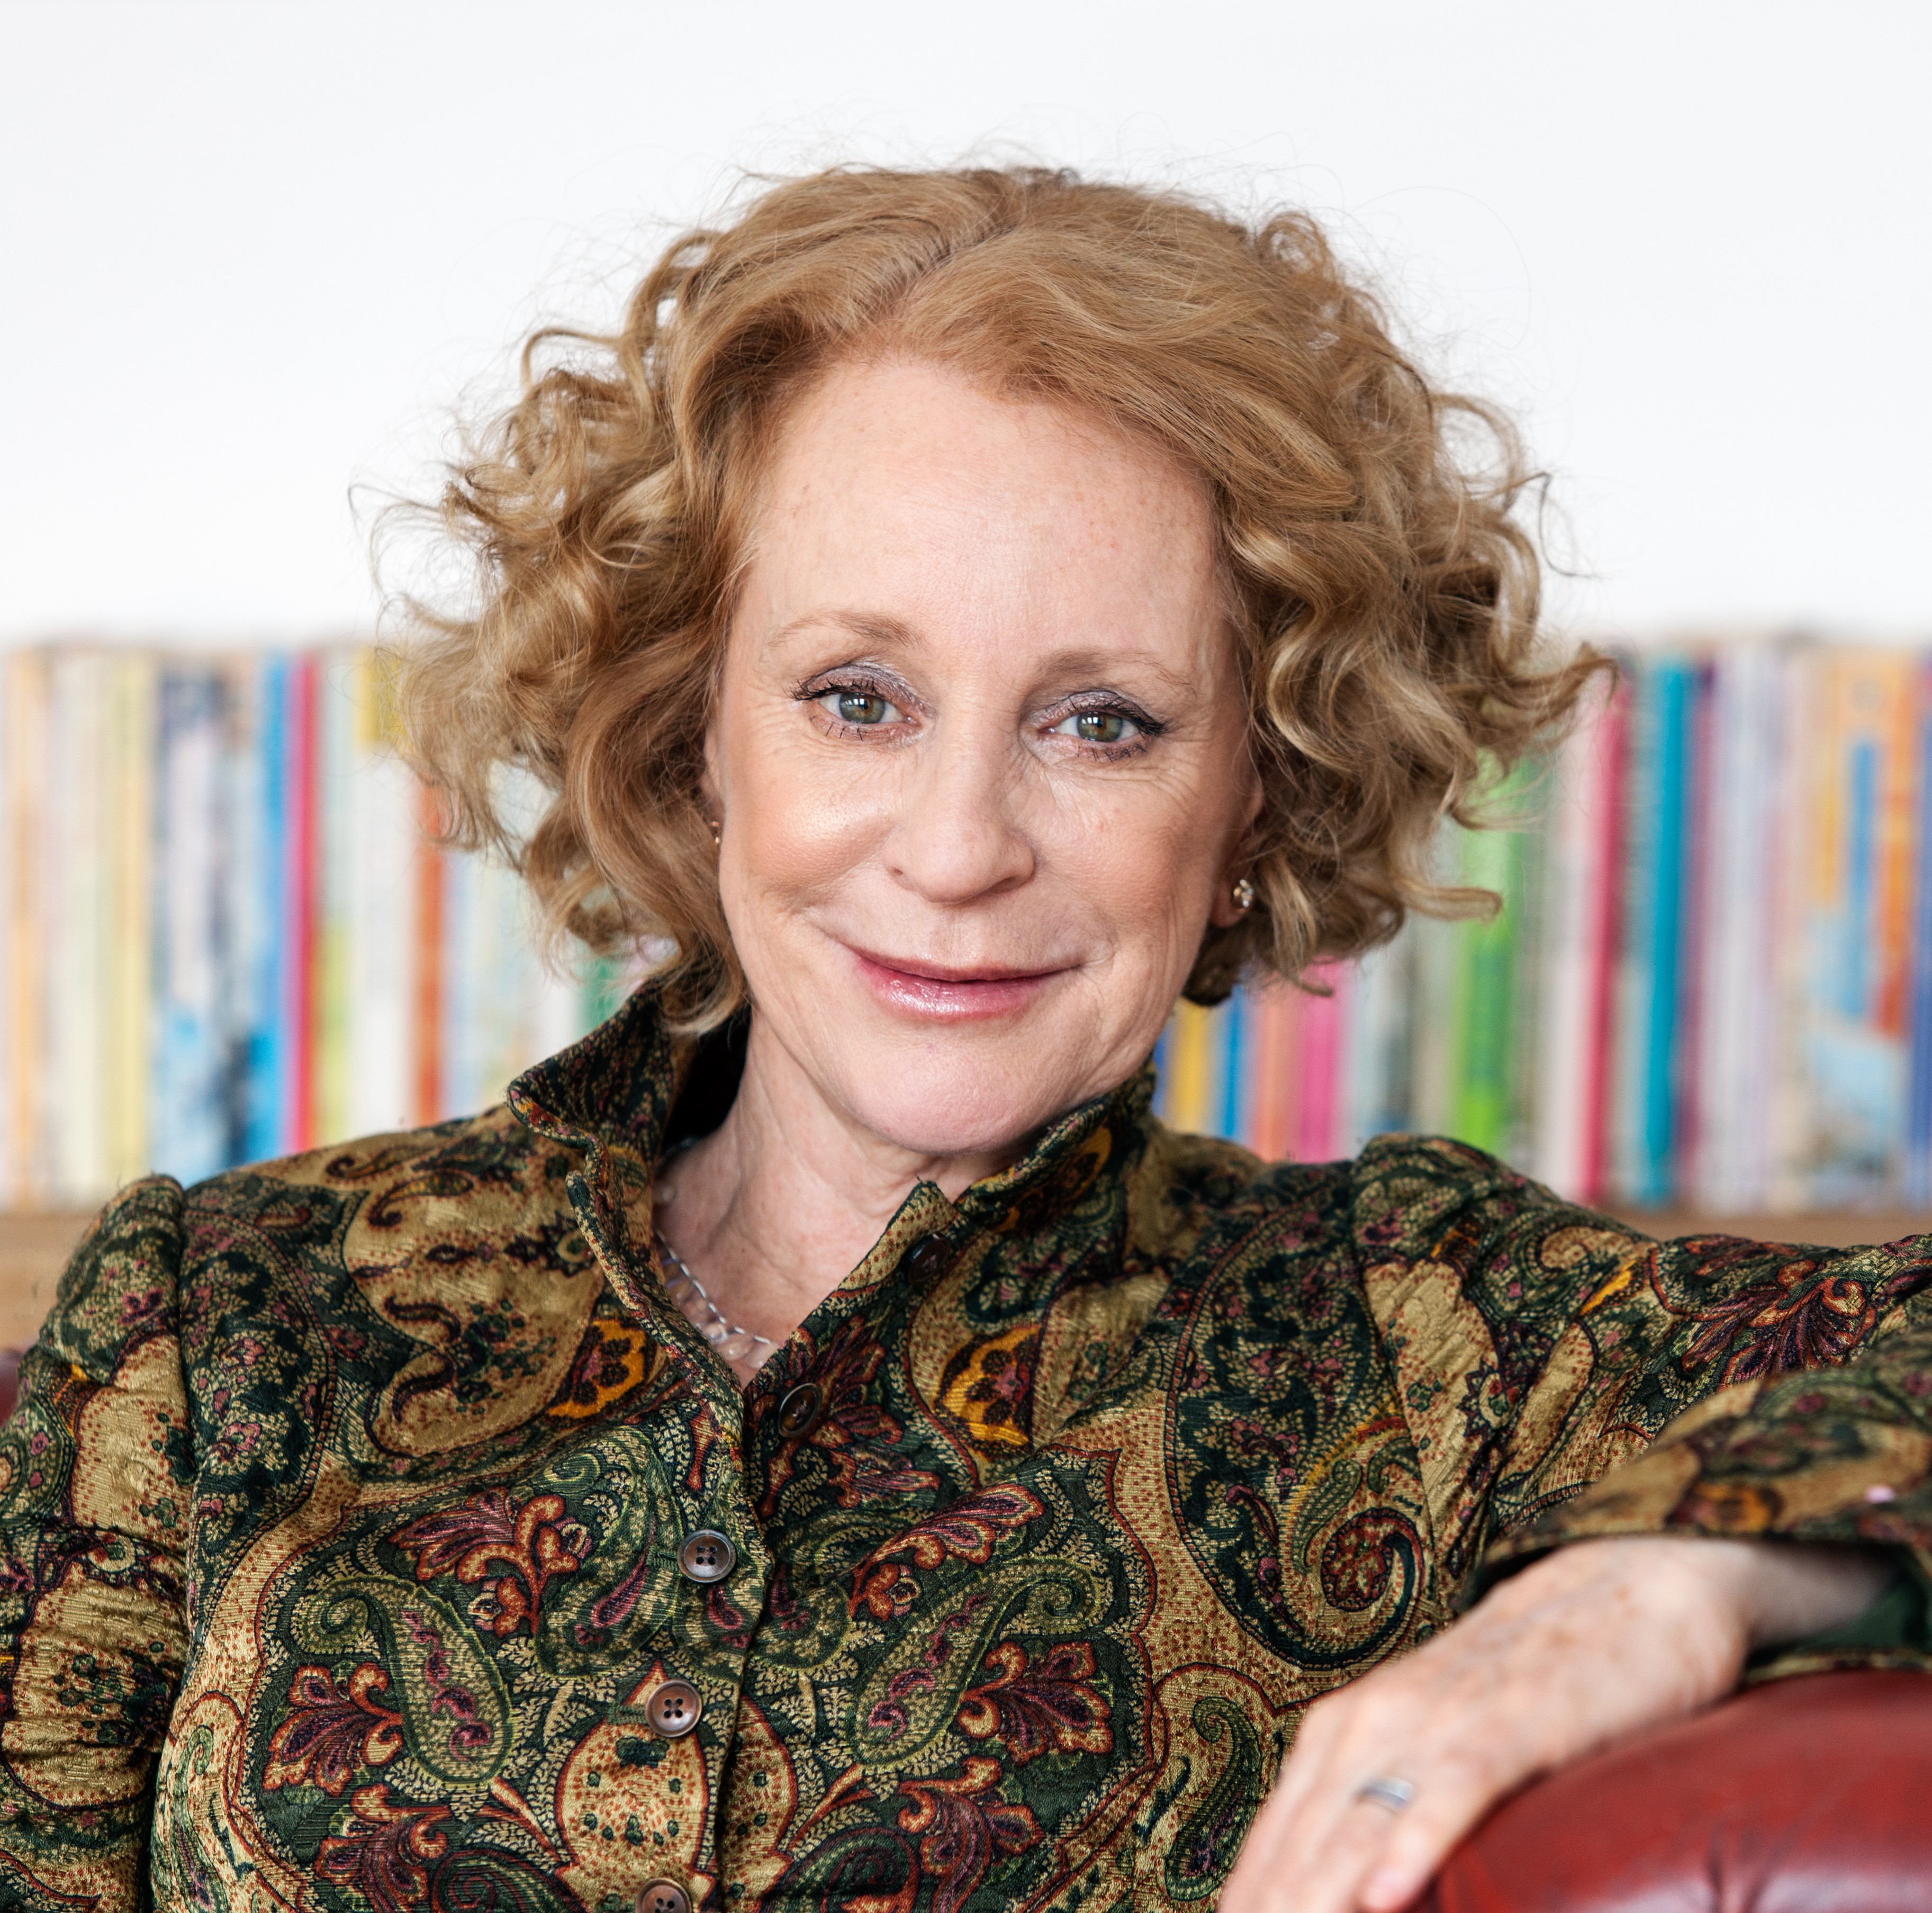 Philippa Gregory's 5 Surprising Facts About Tudor-Era Women